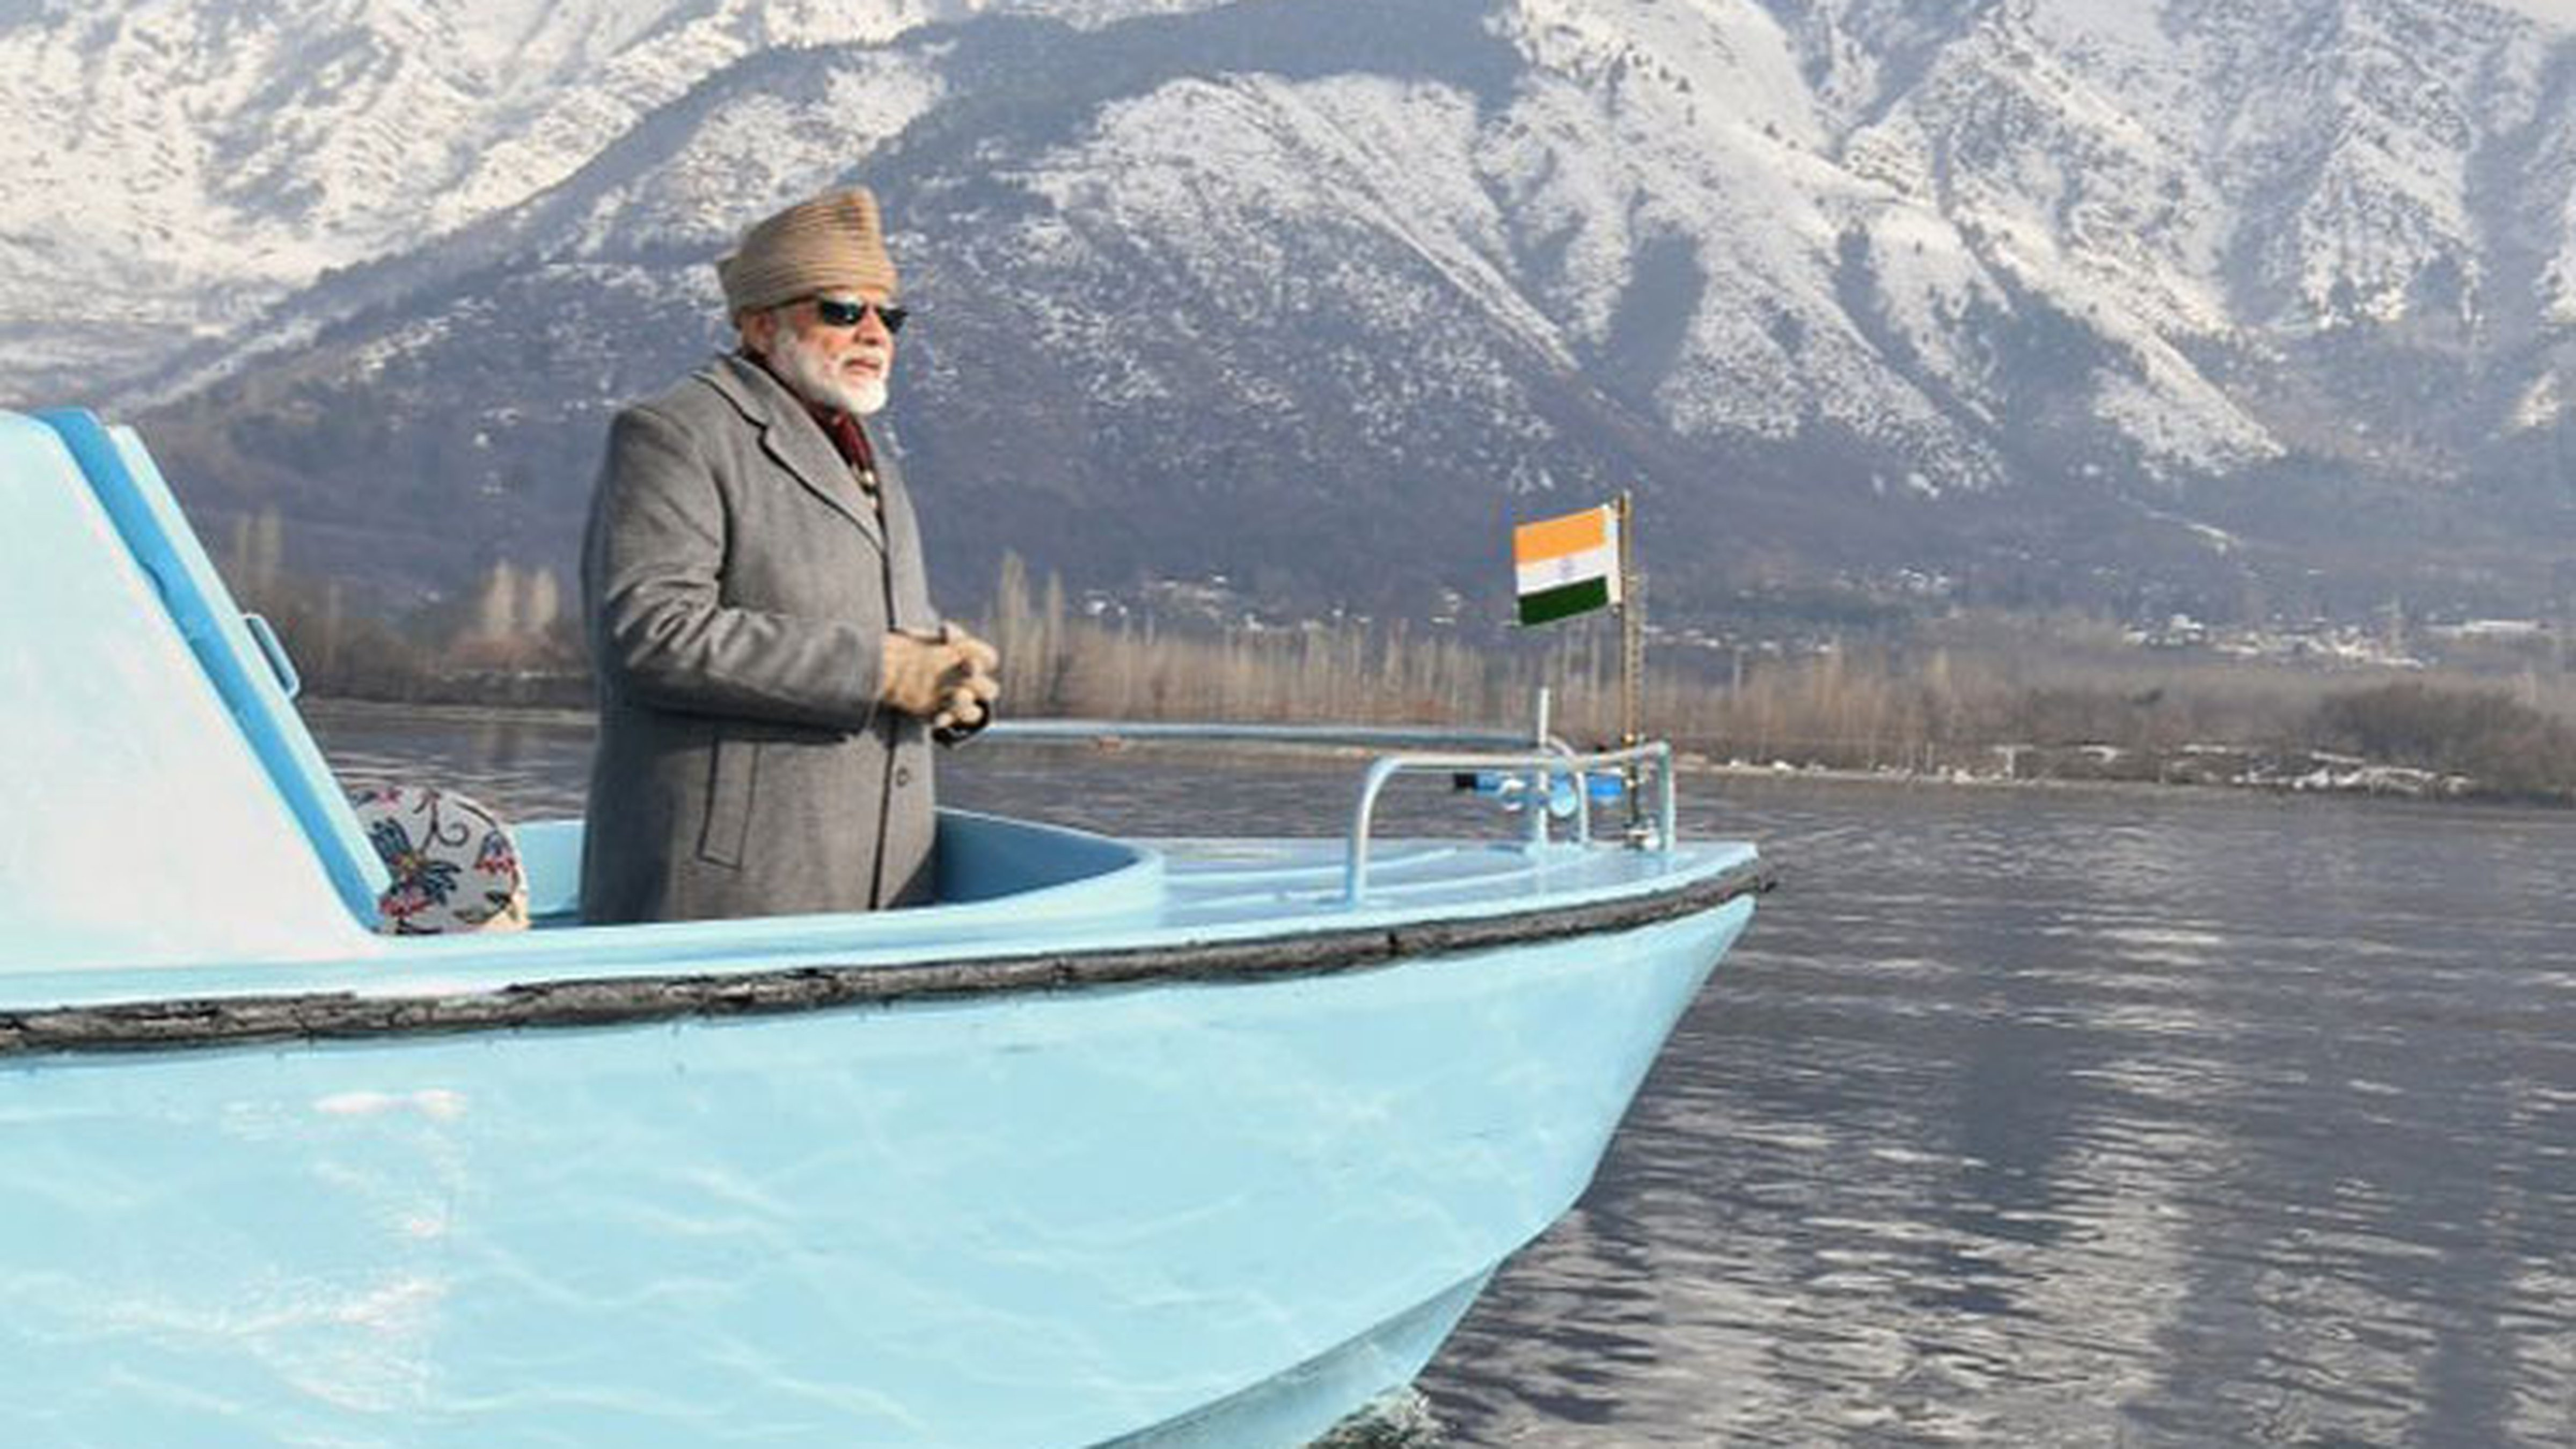 Narendra Modi had allegedly been looking at mountains, not civilians, during a boat ride in troubled Kashmir — yet, he could not help waving at them. Perhaps the man did, for a moment, believe that the mountains, unlike a disenchanted people, would wave back at him